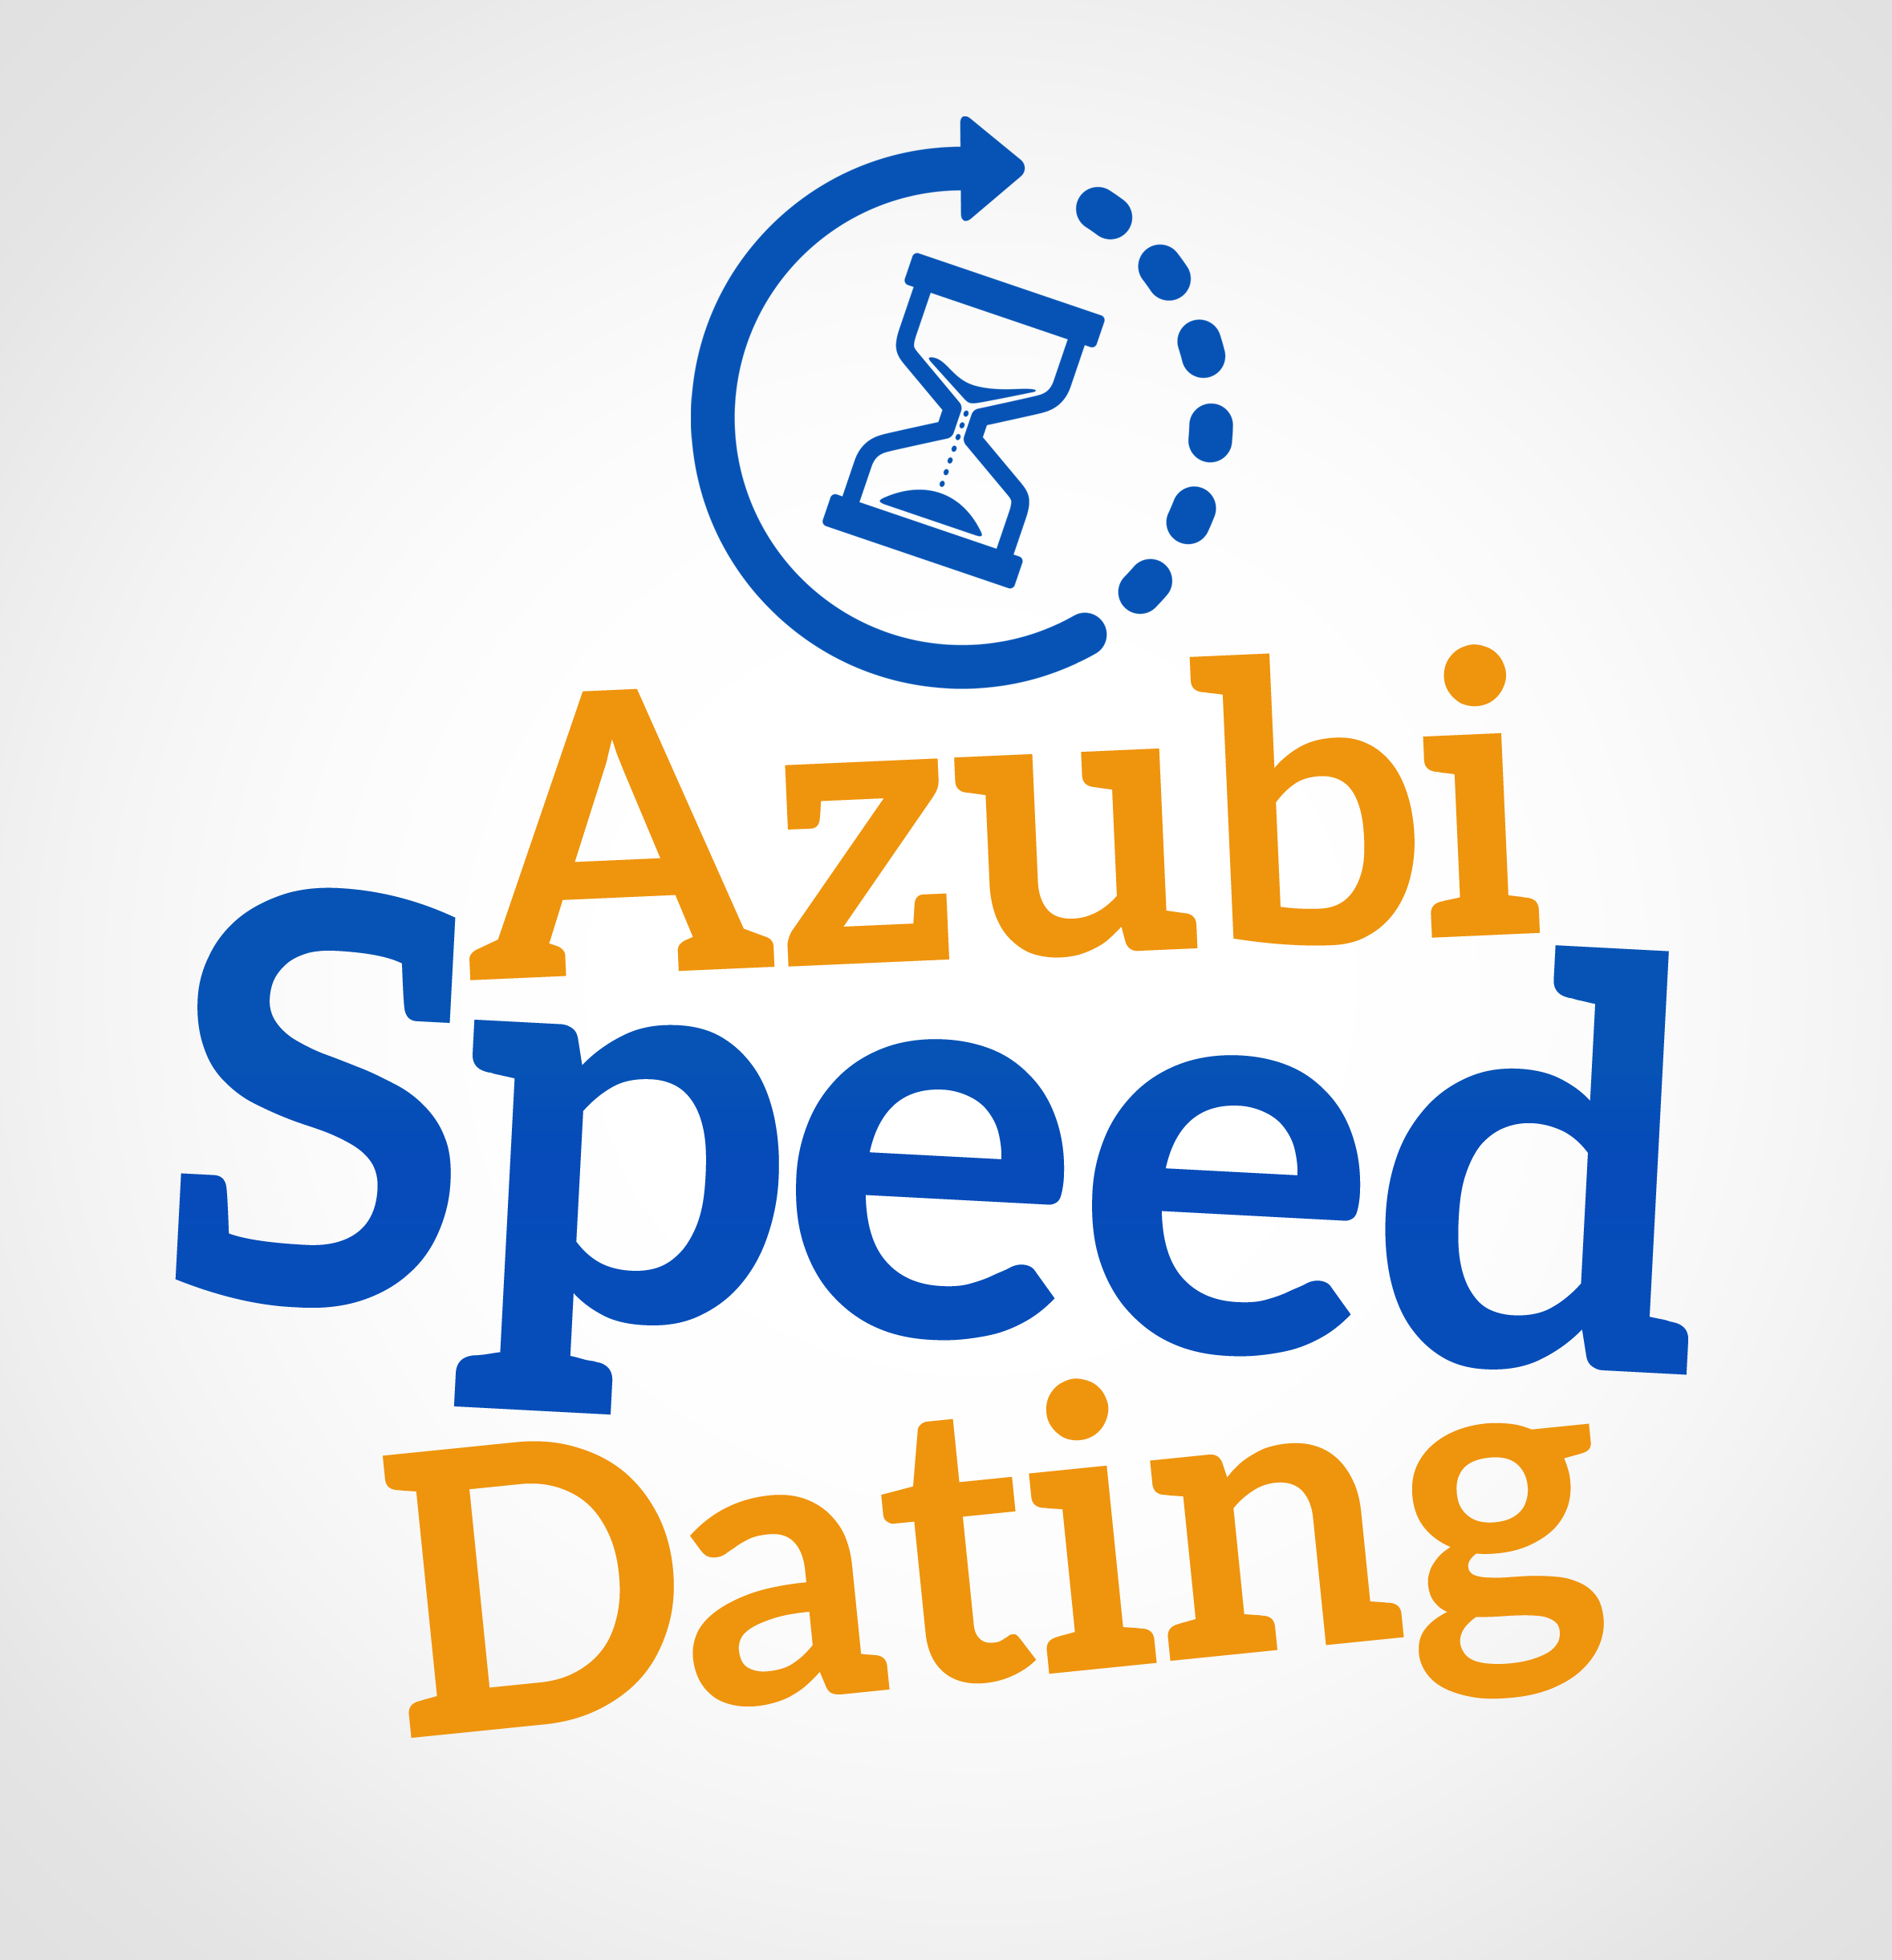 Ausbildungs speed dating düsseldorf